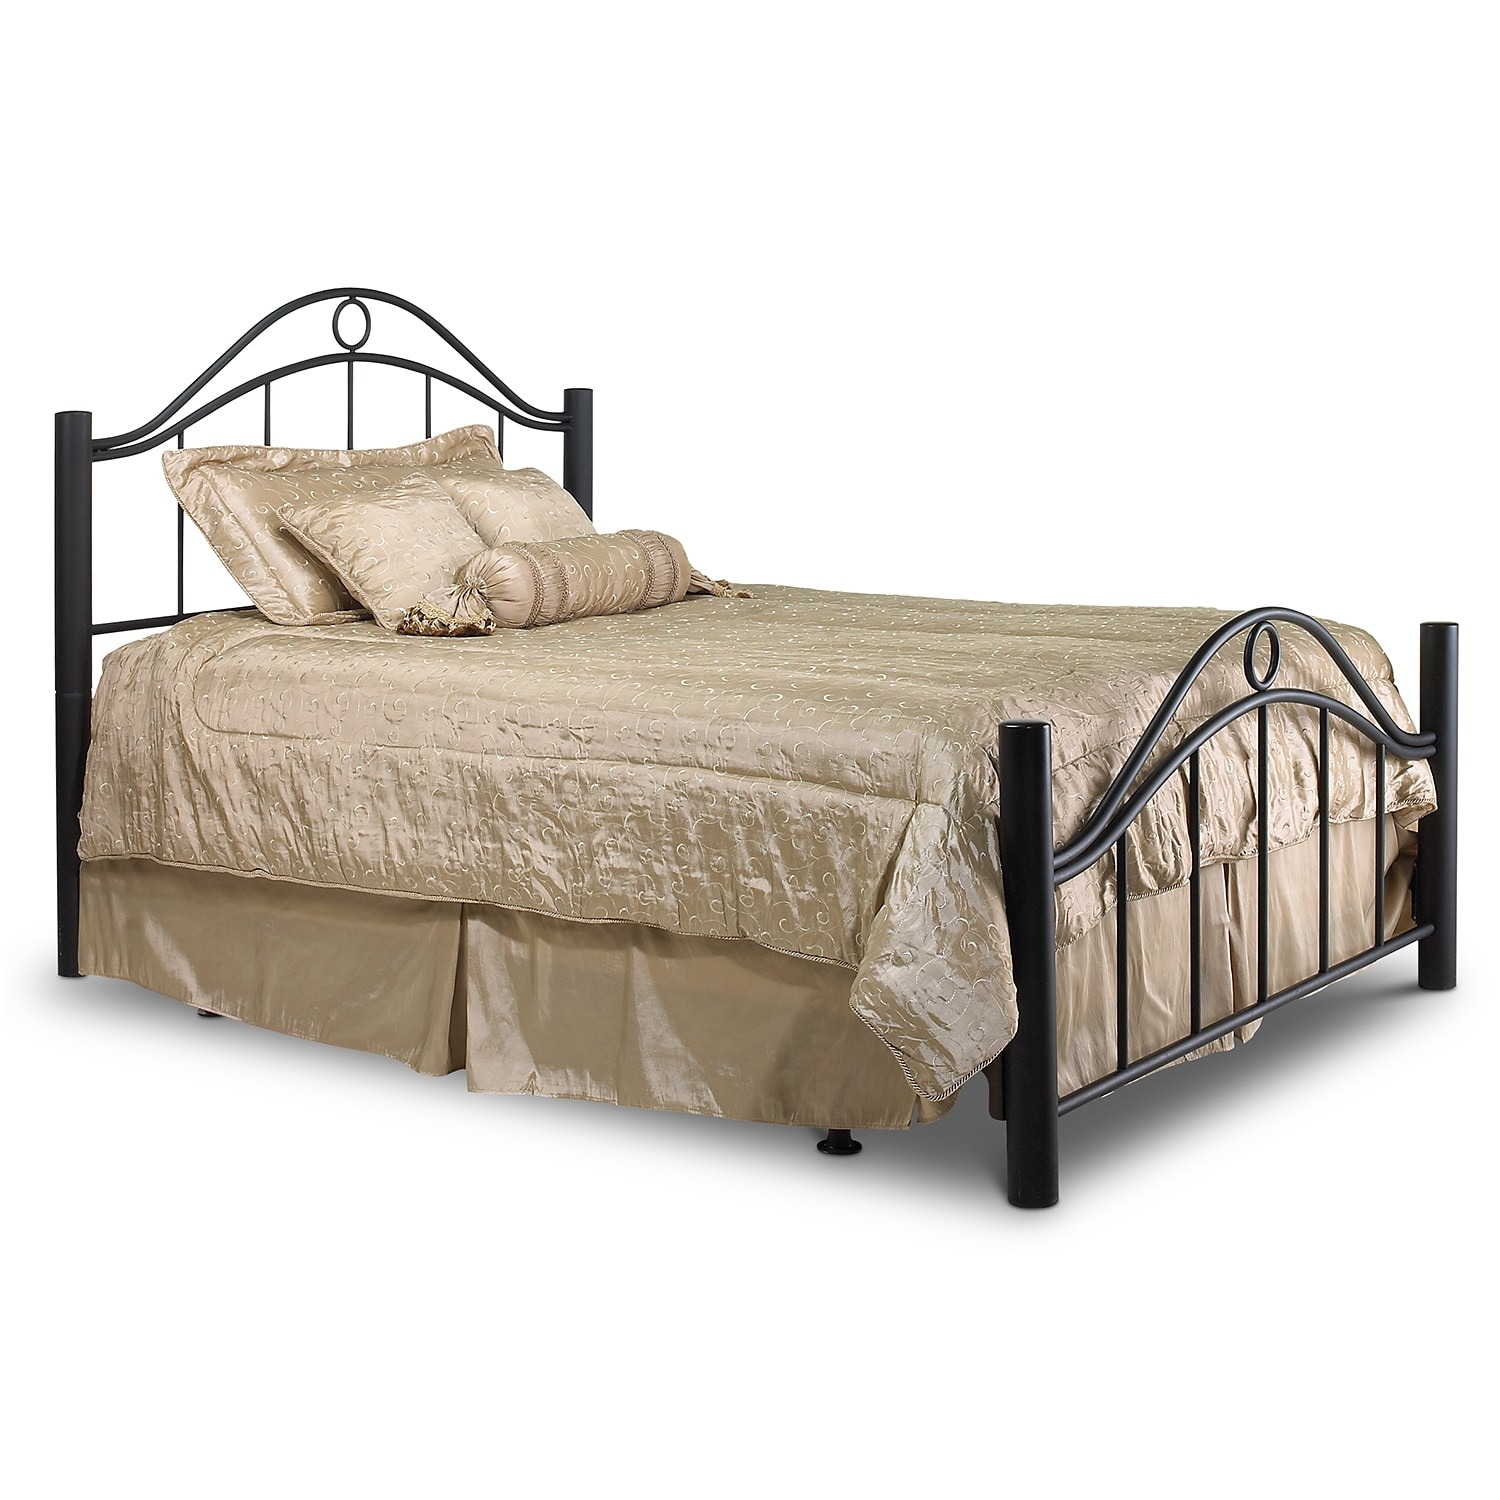 Bedroom Furniture - Linden Twin Bed - Ebony